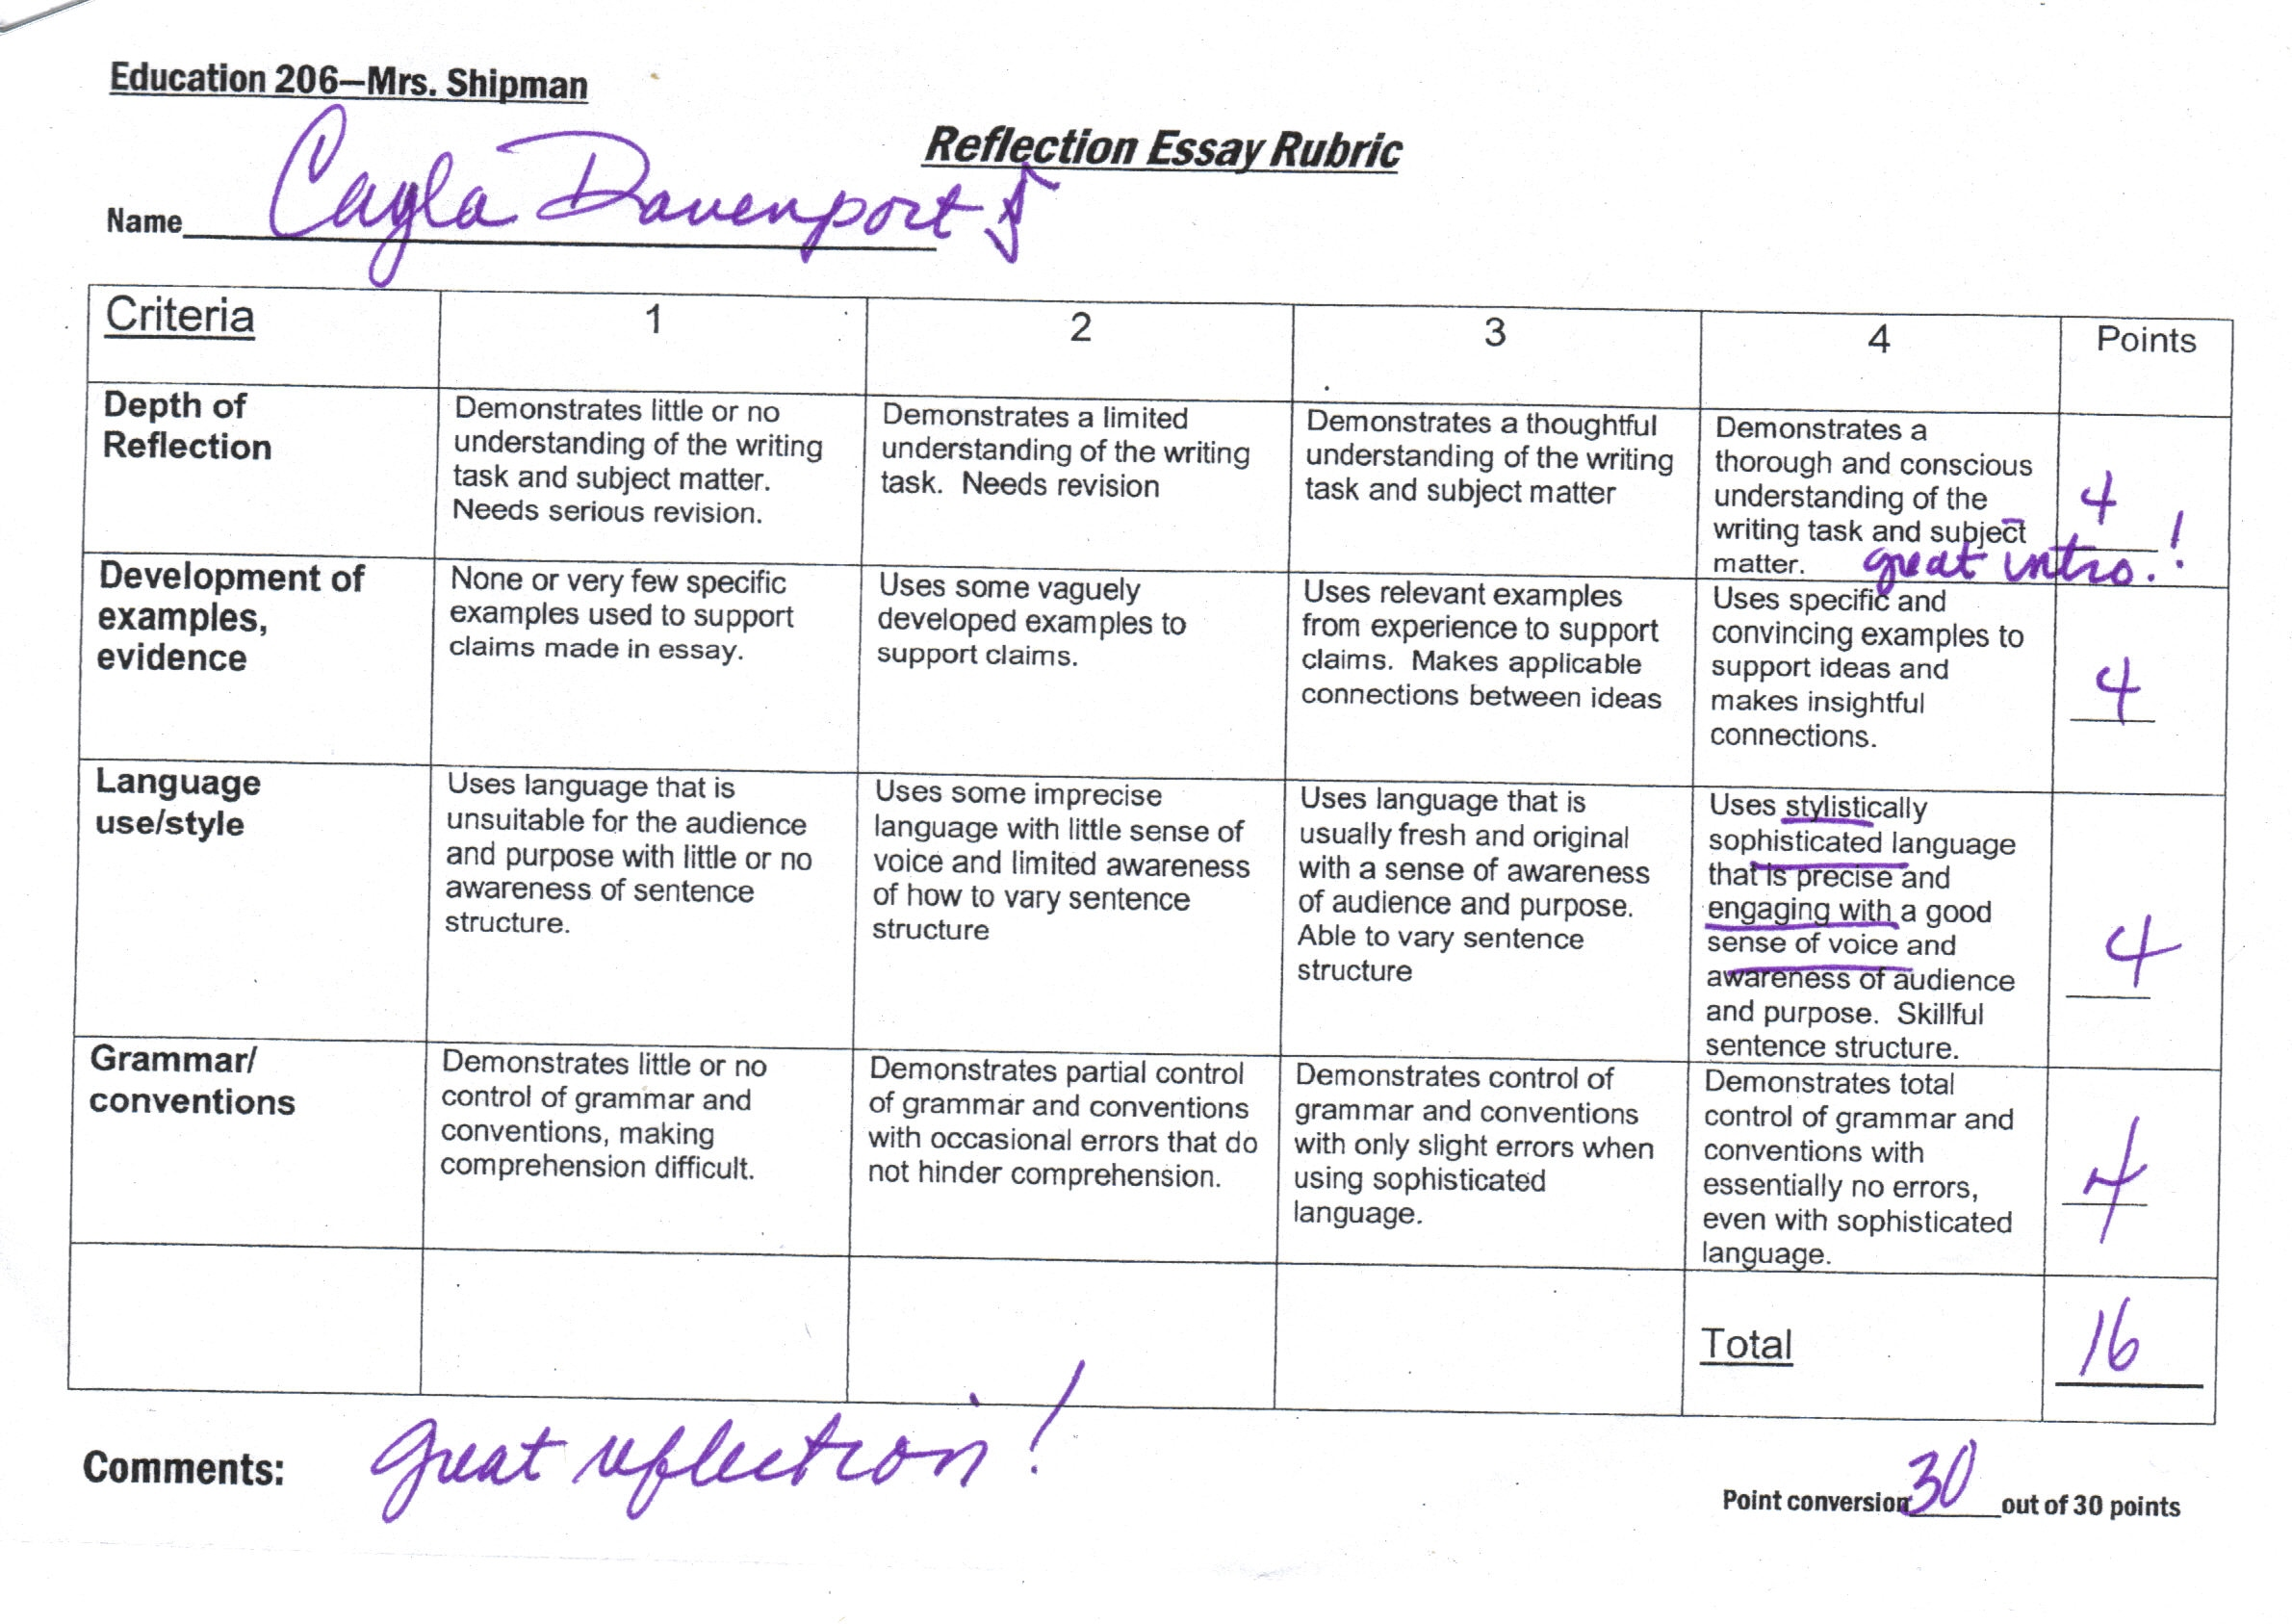 004 Reflective Essay Rubric Example Marvelous Week 2 Guidelines With Scoring Marking Assessment Full